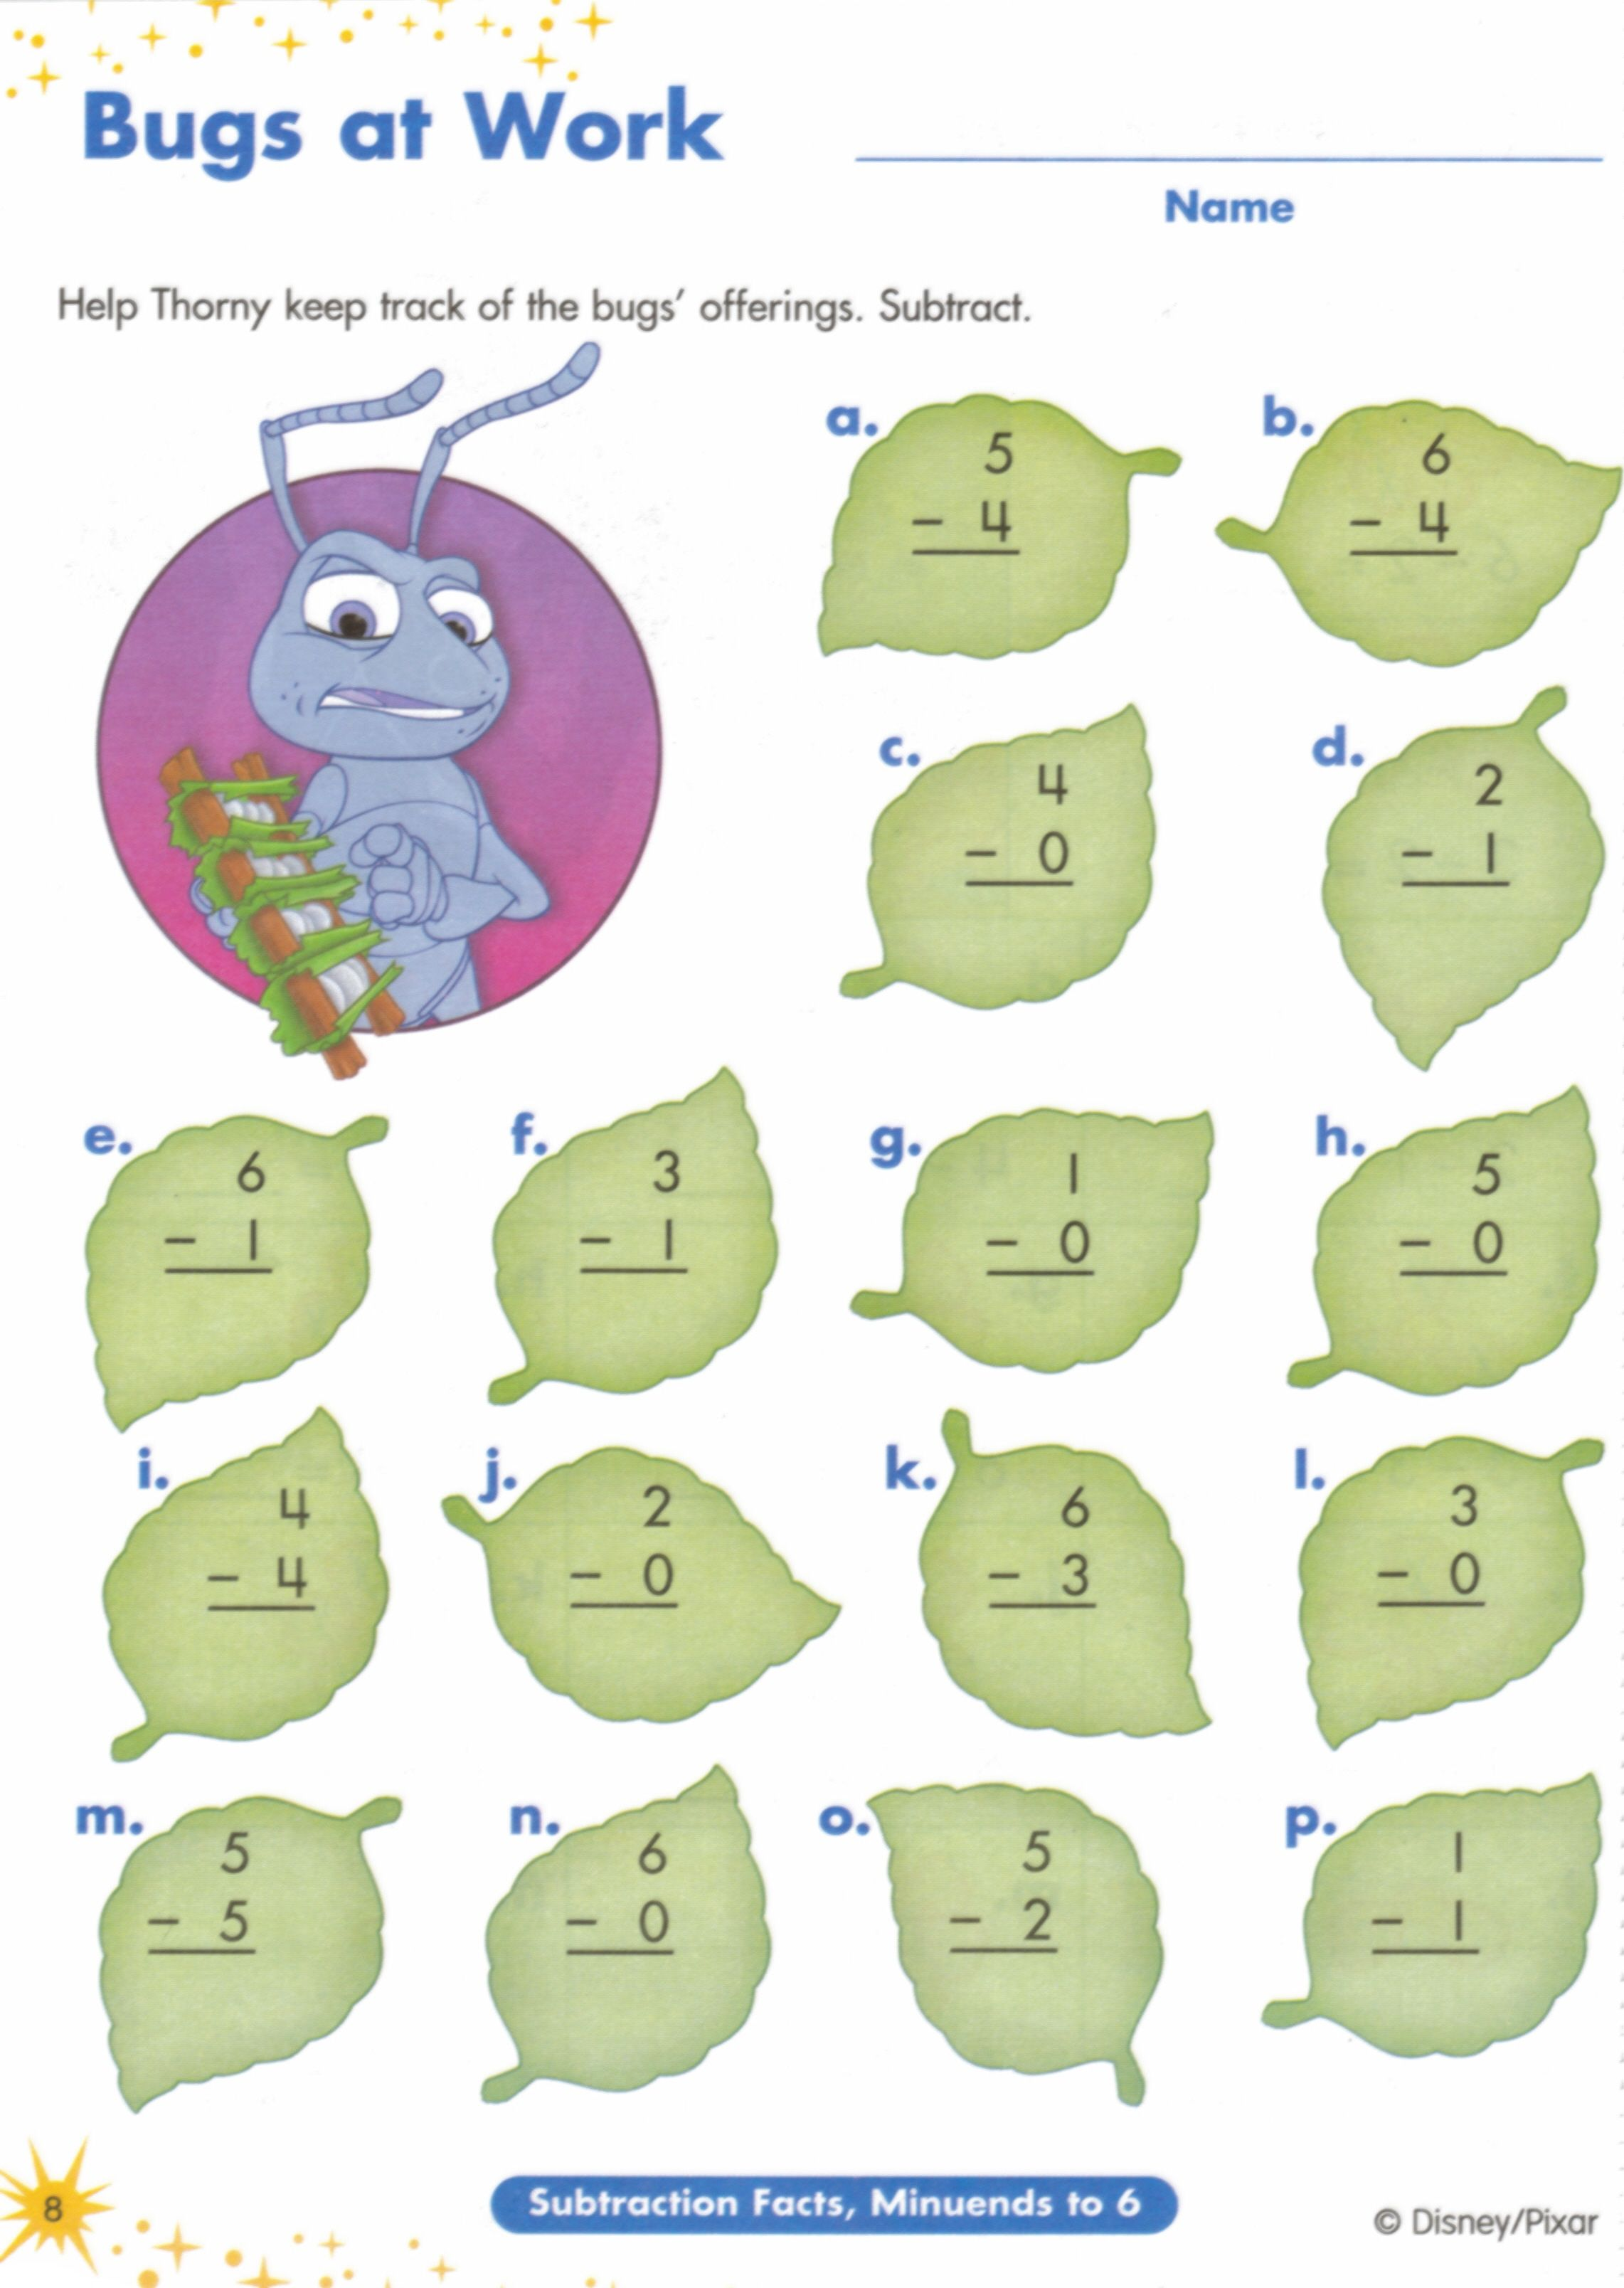 Weirdmailus  Mesmerizing  Images About Worksheets On Pinterest  Fun Facts For Kids  With Entrancing  Images About Worksheets On Pinterest  Fun Facts For Kids Earth Day Worksheets And Jungles With Appealing Function Machines Worksheets Ks Also Basic Multiplication Worksheets Free Printable In Addition Blank Multiplication Grid Worksheet And Phonics Vowel Sounds Worksheets As Well As Ed Grade Math Worksheets Additionally Ks Adjectives Worksheet From Pinterestcom With Weirdmailus  Entrancing  Images About Worksheets On Pinterest  Fun Facts For Kids  With Appealing  Images About Worksheets On Pinterest  Fun Facts For Kids Earth Day Worksheets And Jungles And Mesmerizing Function Machines Worksheets Ks Also Basic Multiplication Worksheets Free Printable In Addition Blank Multiplication Grid Worksheet From Pinterestcom